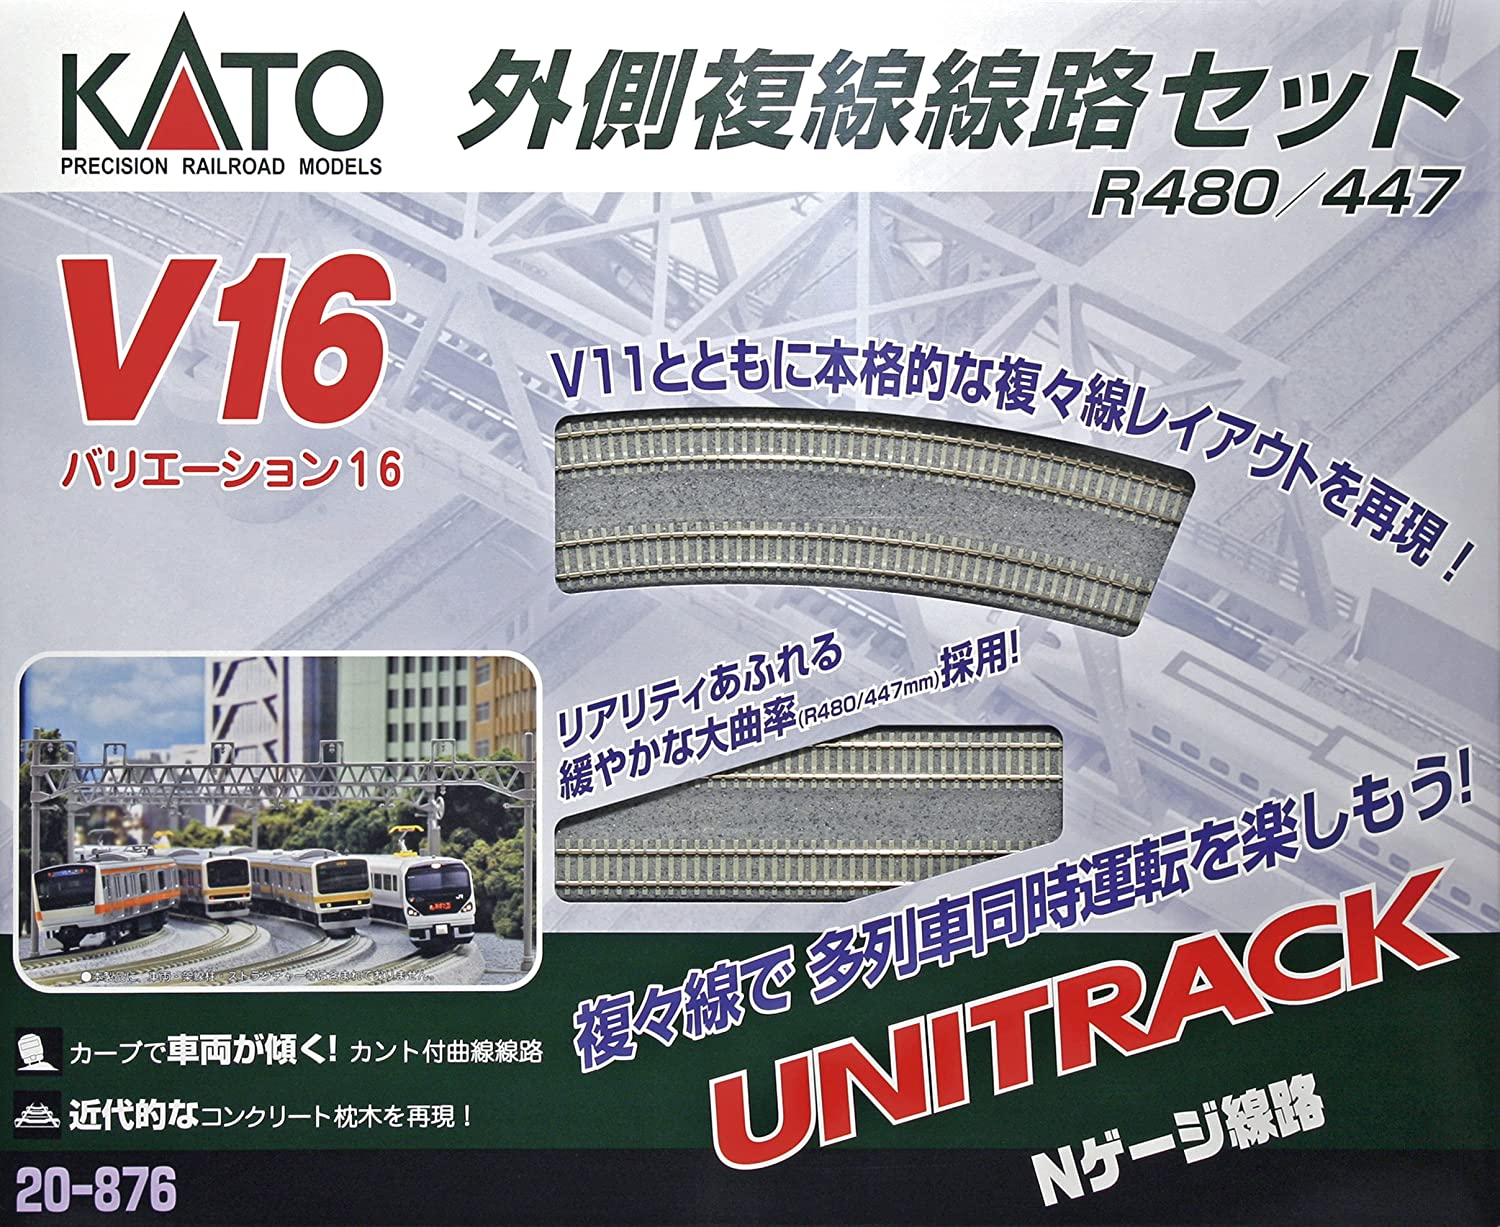 Kato USA Model Train Products V16 UNITRACK Japanese Packaging Version Double Track Outer Loop Set Kato Trains 20-876